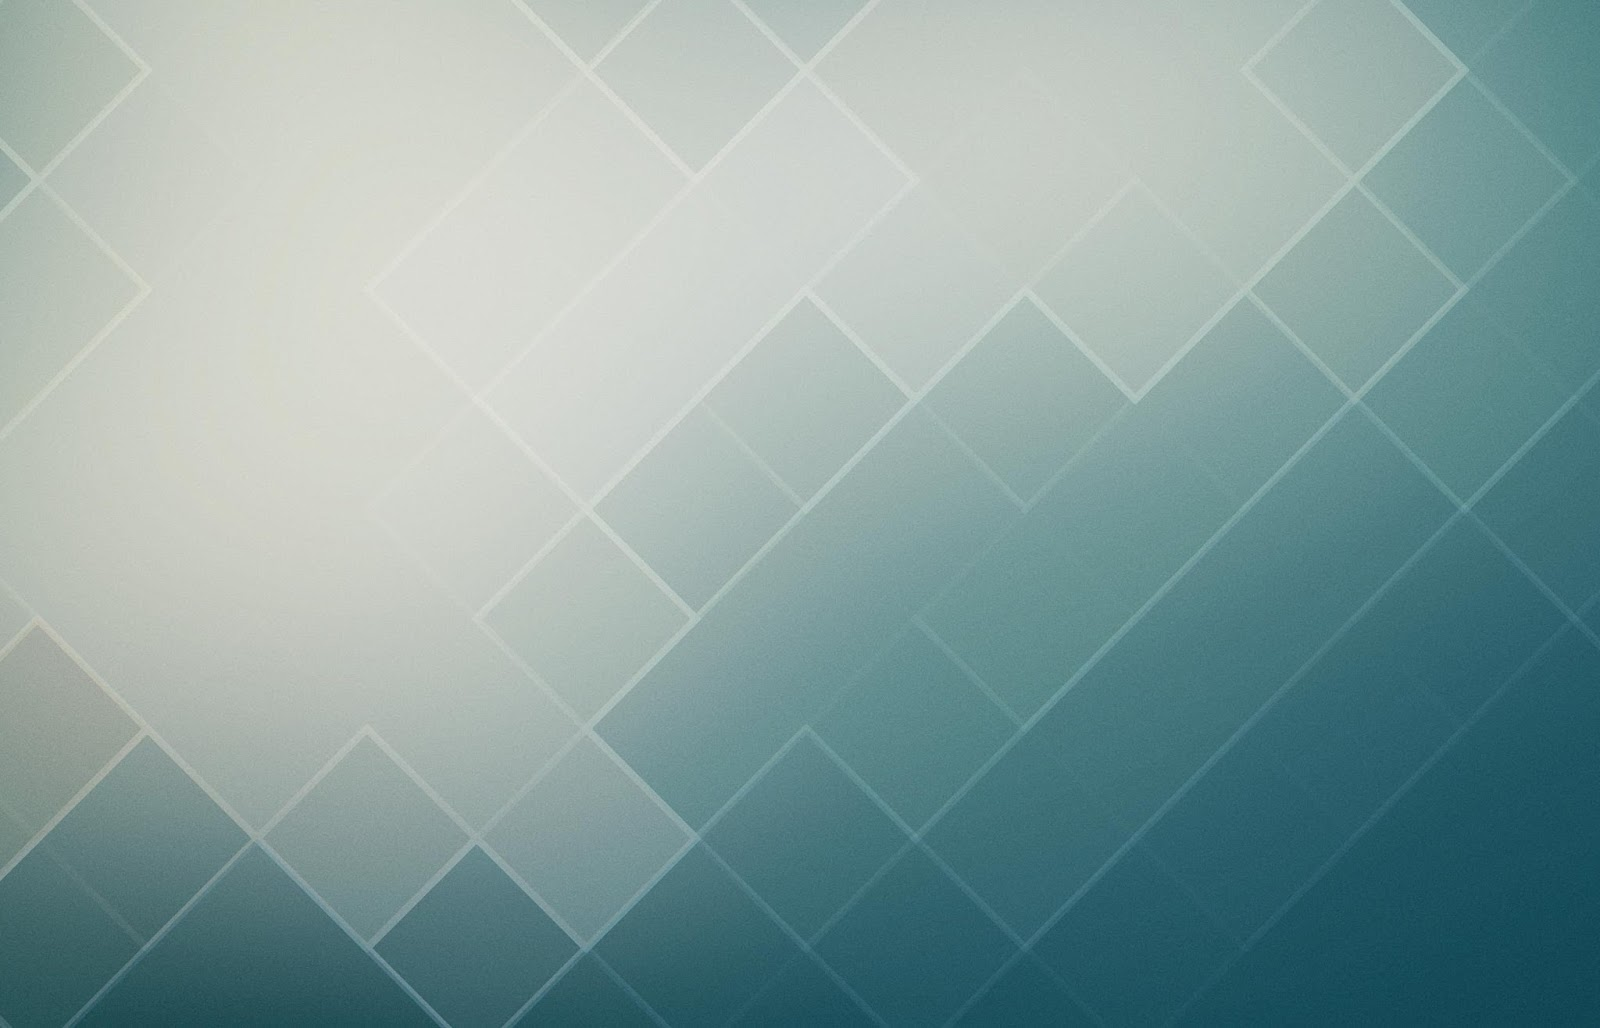 Abstract Background#5